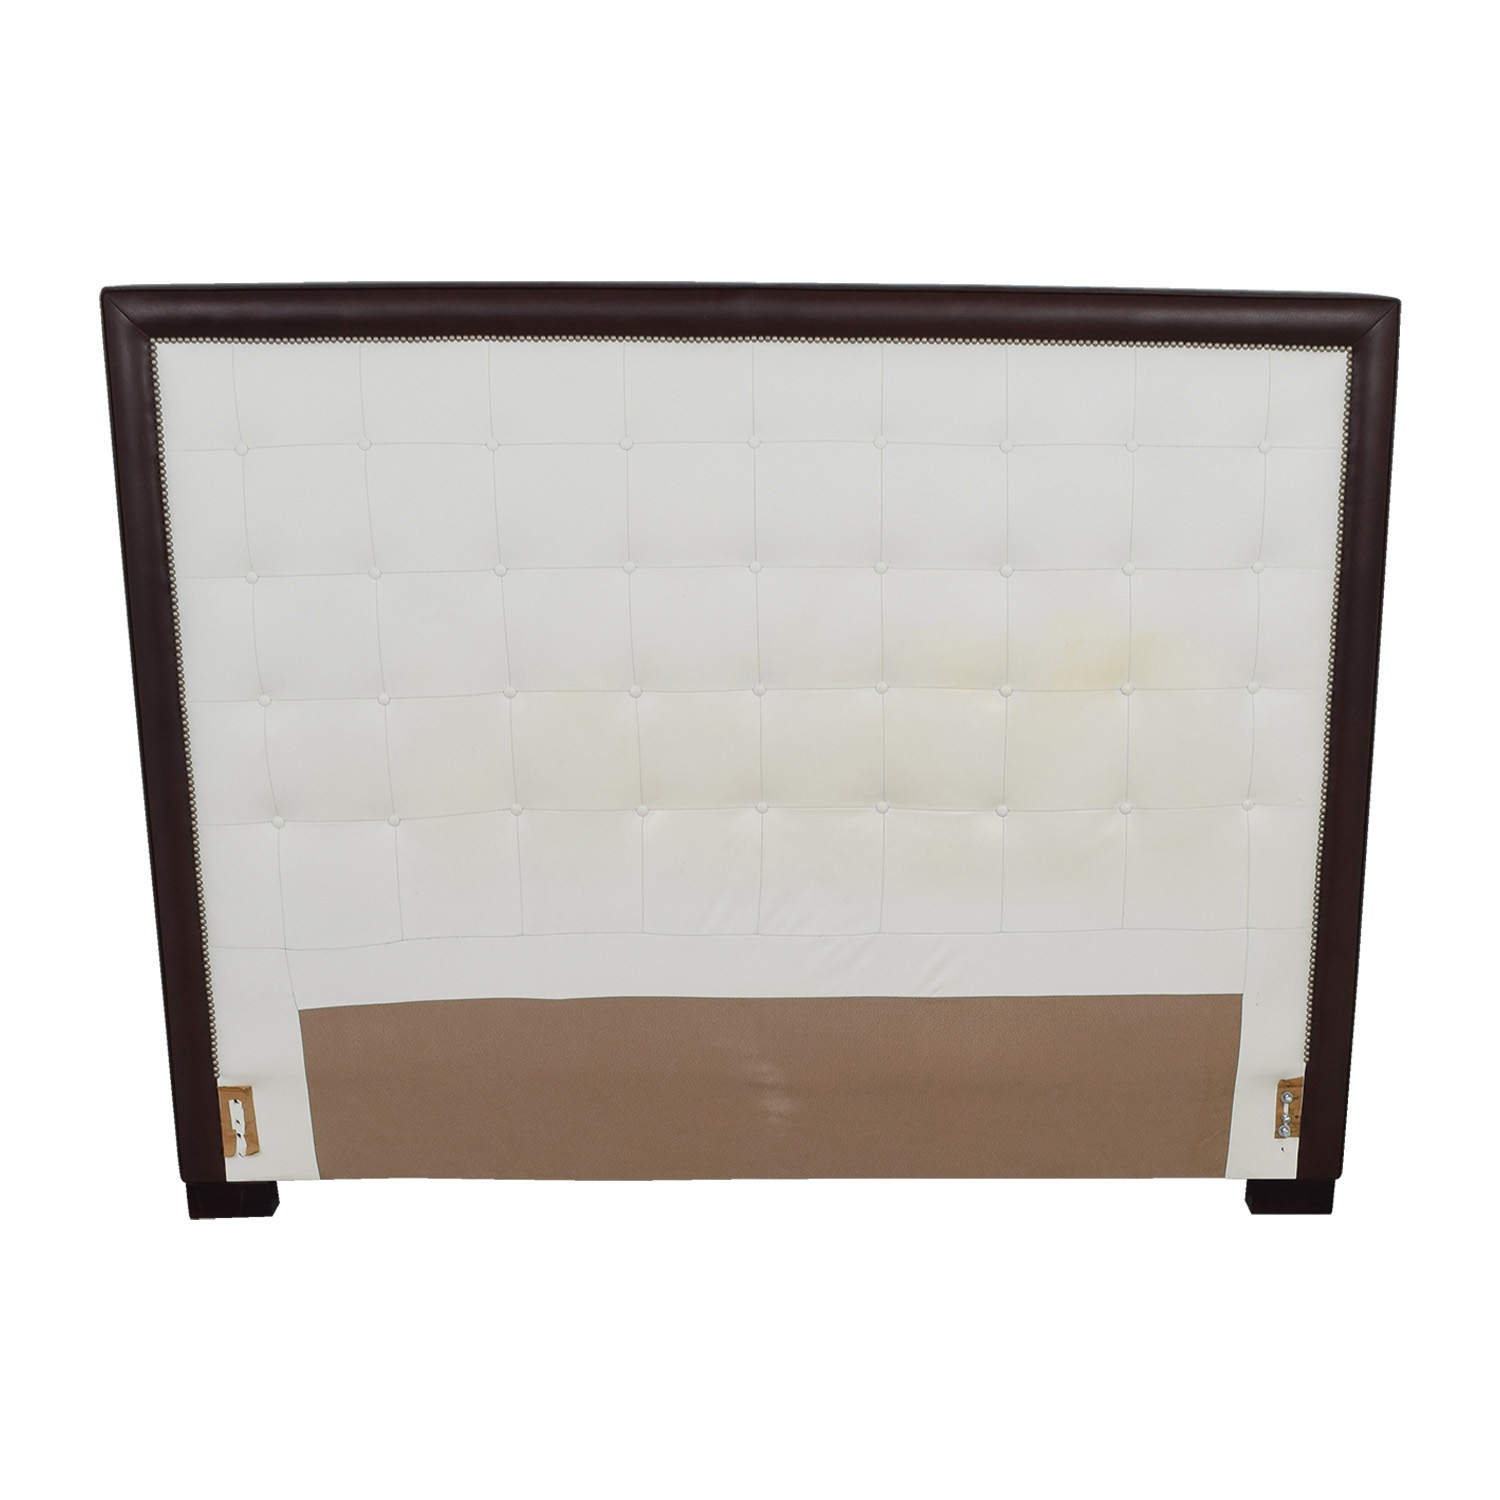 heads headboards of frames platform cheap and tufted single tall diamond for headboardithood wooden full low intended leather bed size twin decoration furniture diy exclusive upholstered frame seagrass headboard king